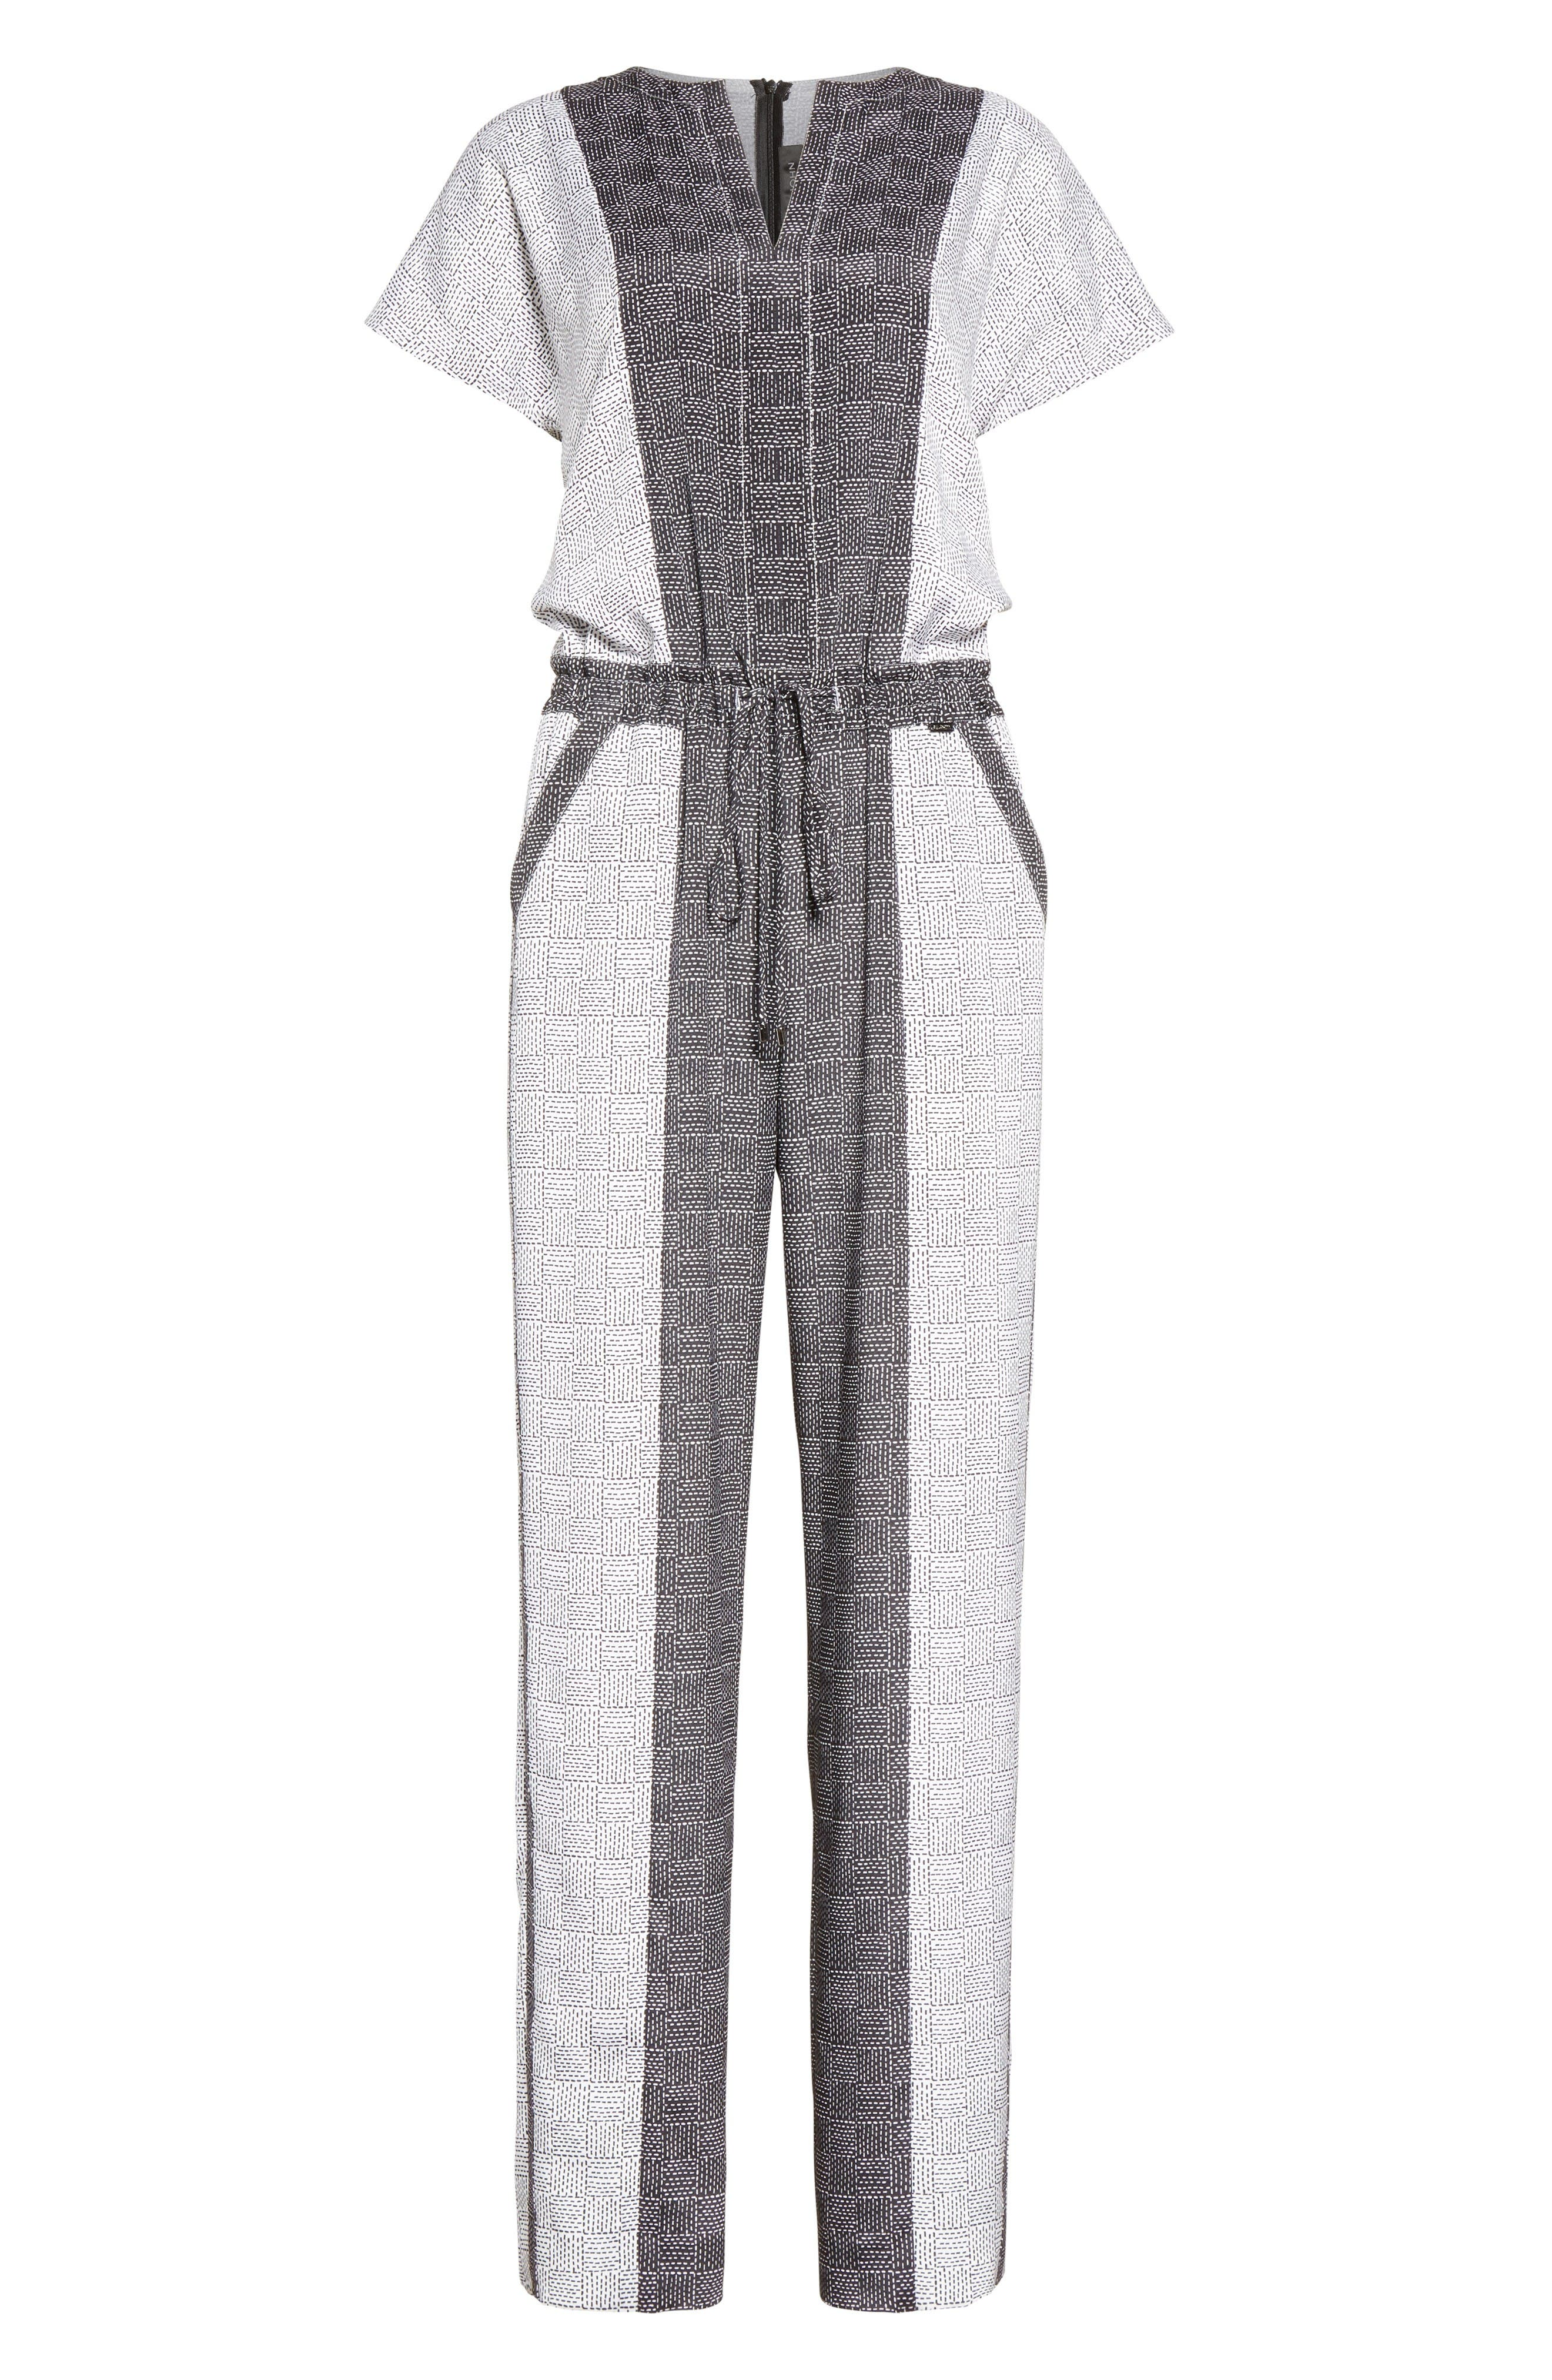 Stitch Print Stretch Silk Jumpsuit,                             Alternate thumbnail 7, color,                             Bianco/ Caviar